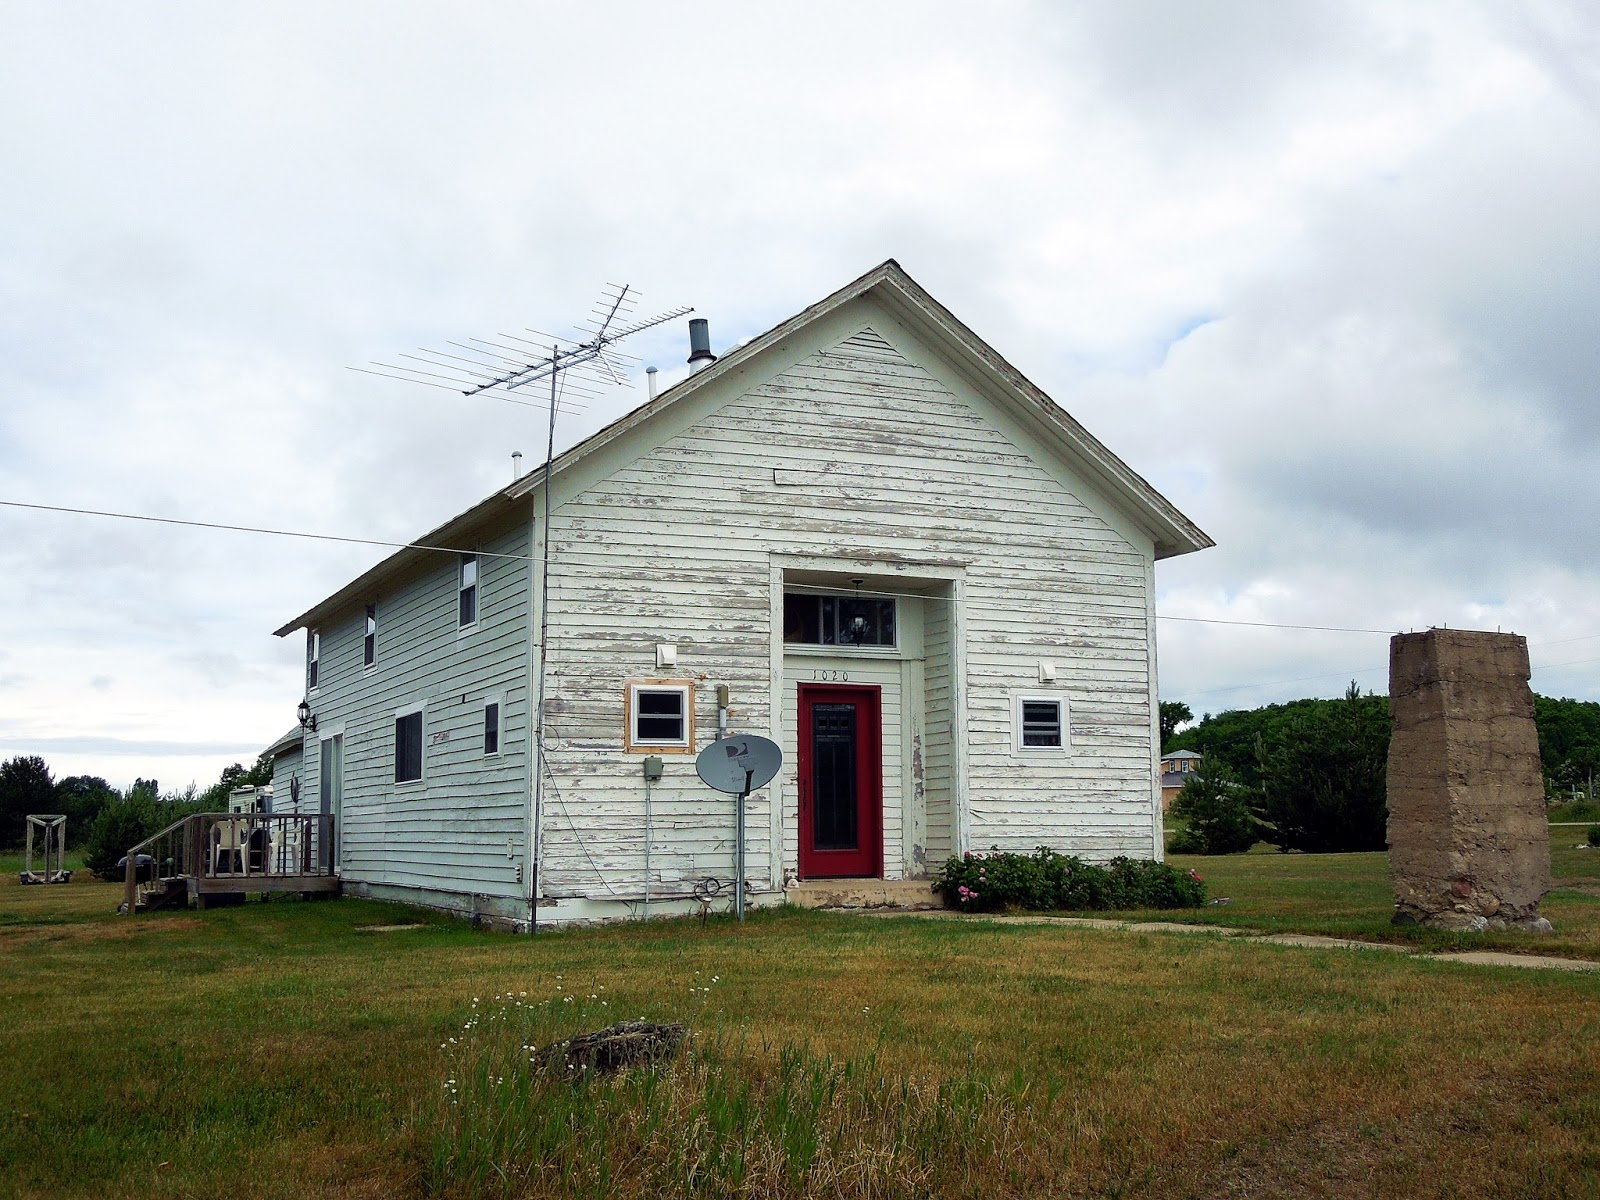 Michigan emmet county levering - Location Northwest Corner Of Sturgeon Bay Trail And West Bliss Road In Bliss Township